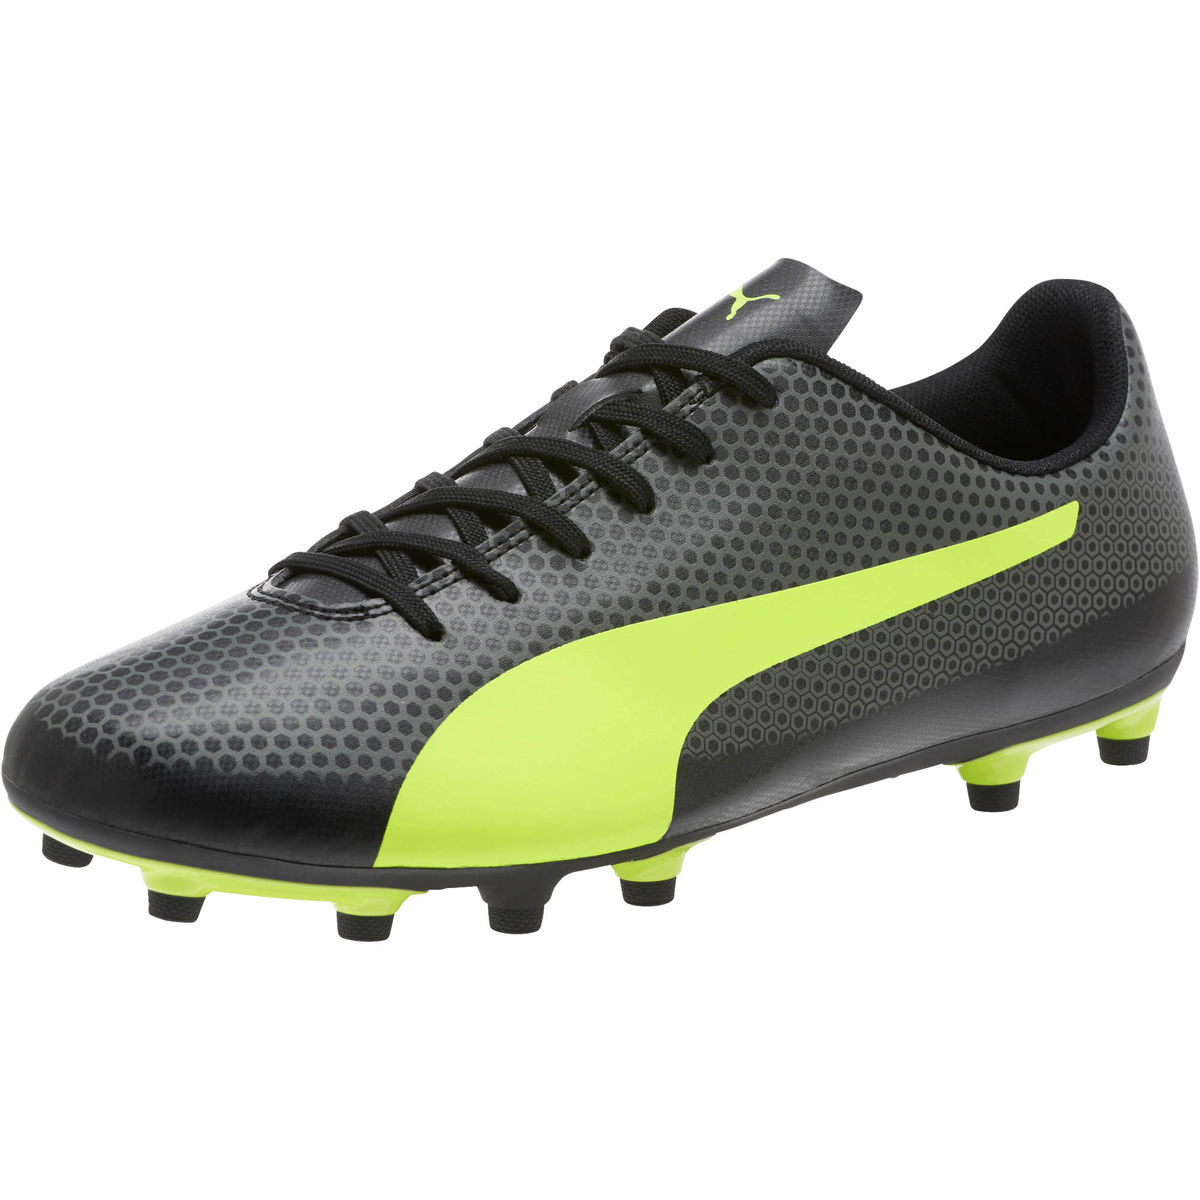 Puma Men's Spirit Fg Firm Ground Soccer Cleats - Black, 13